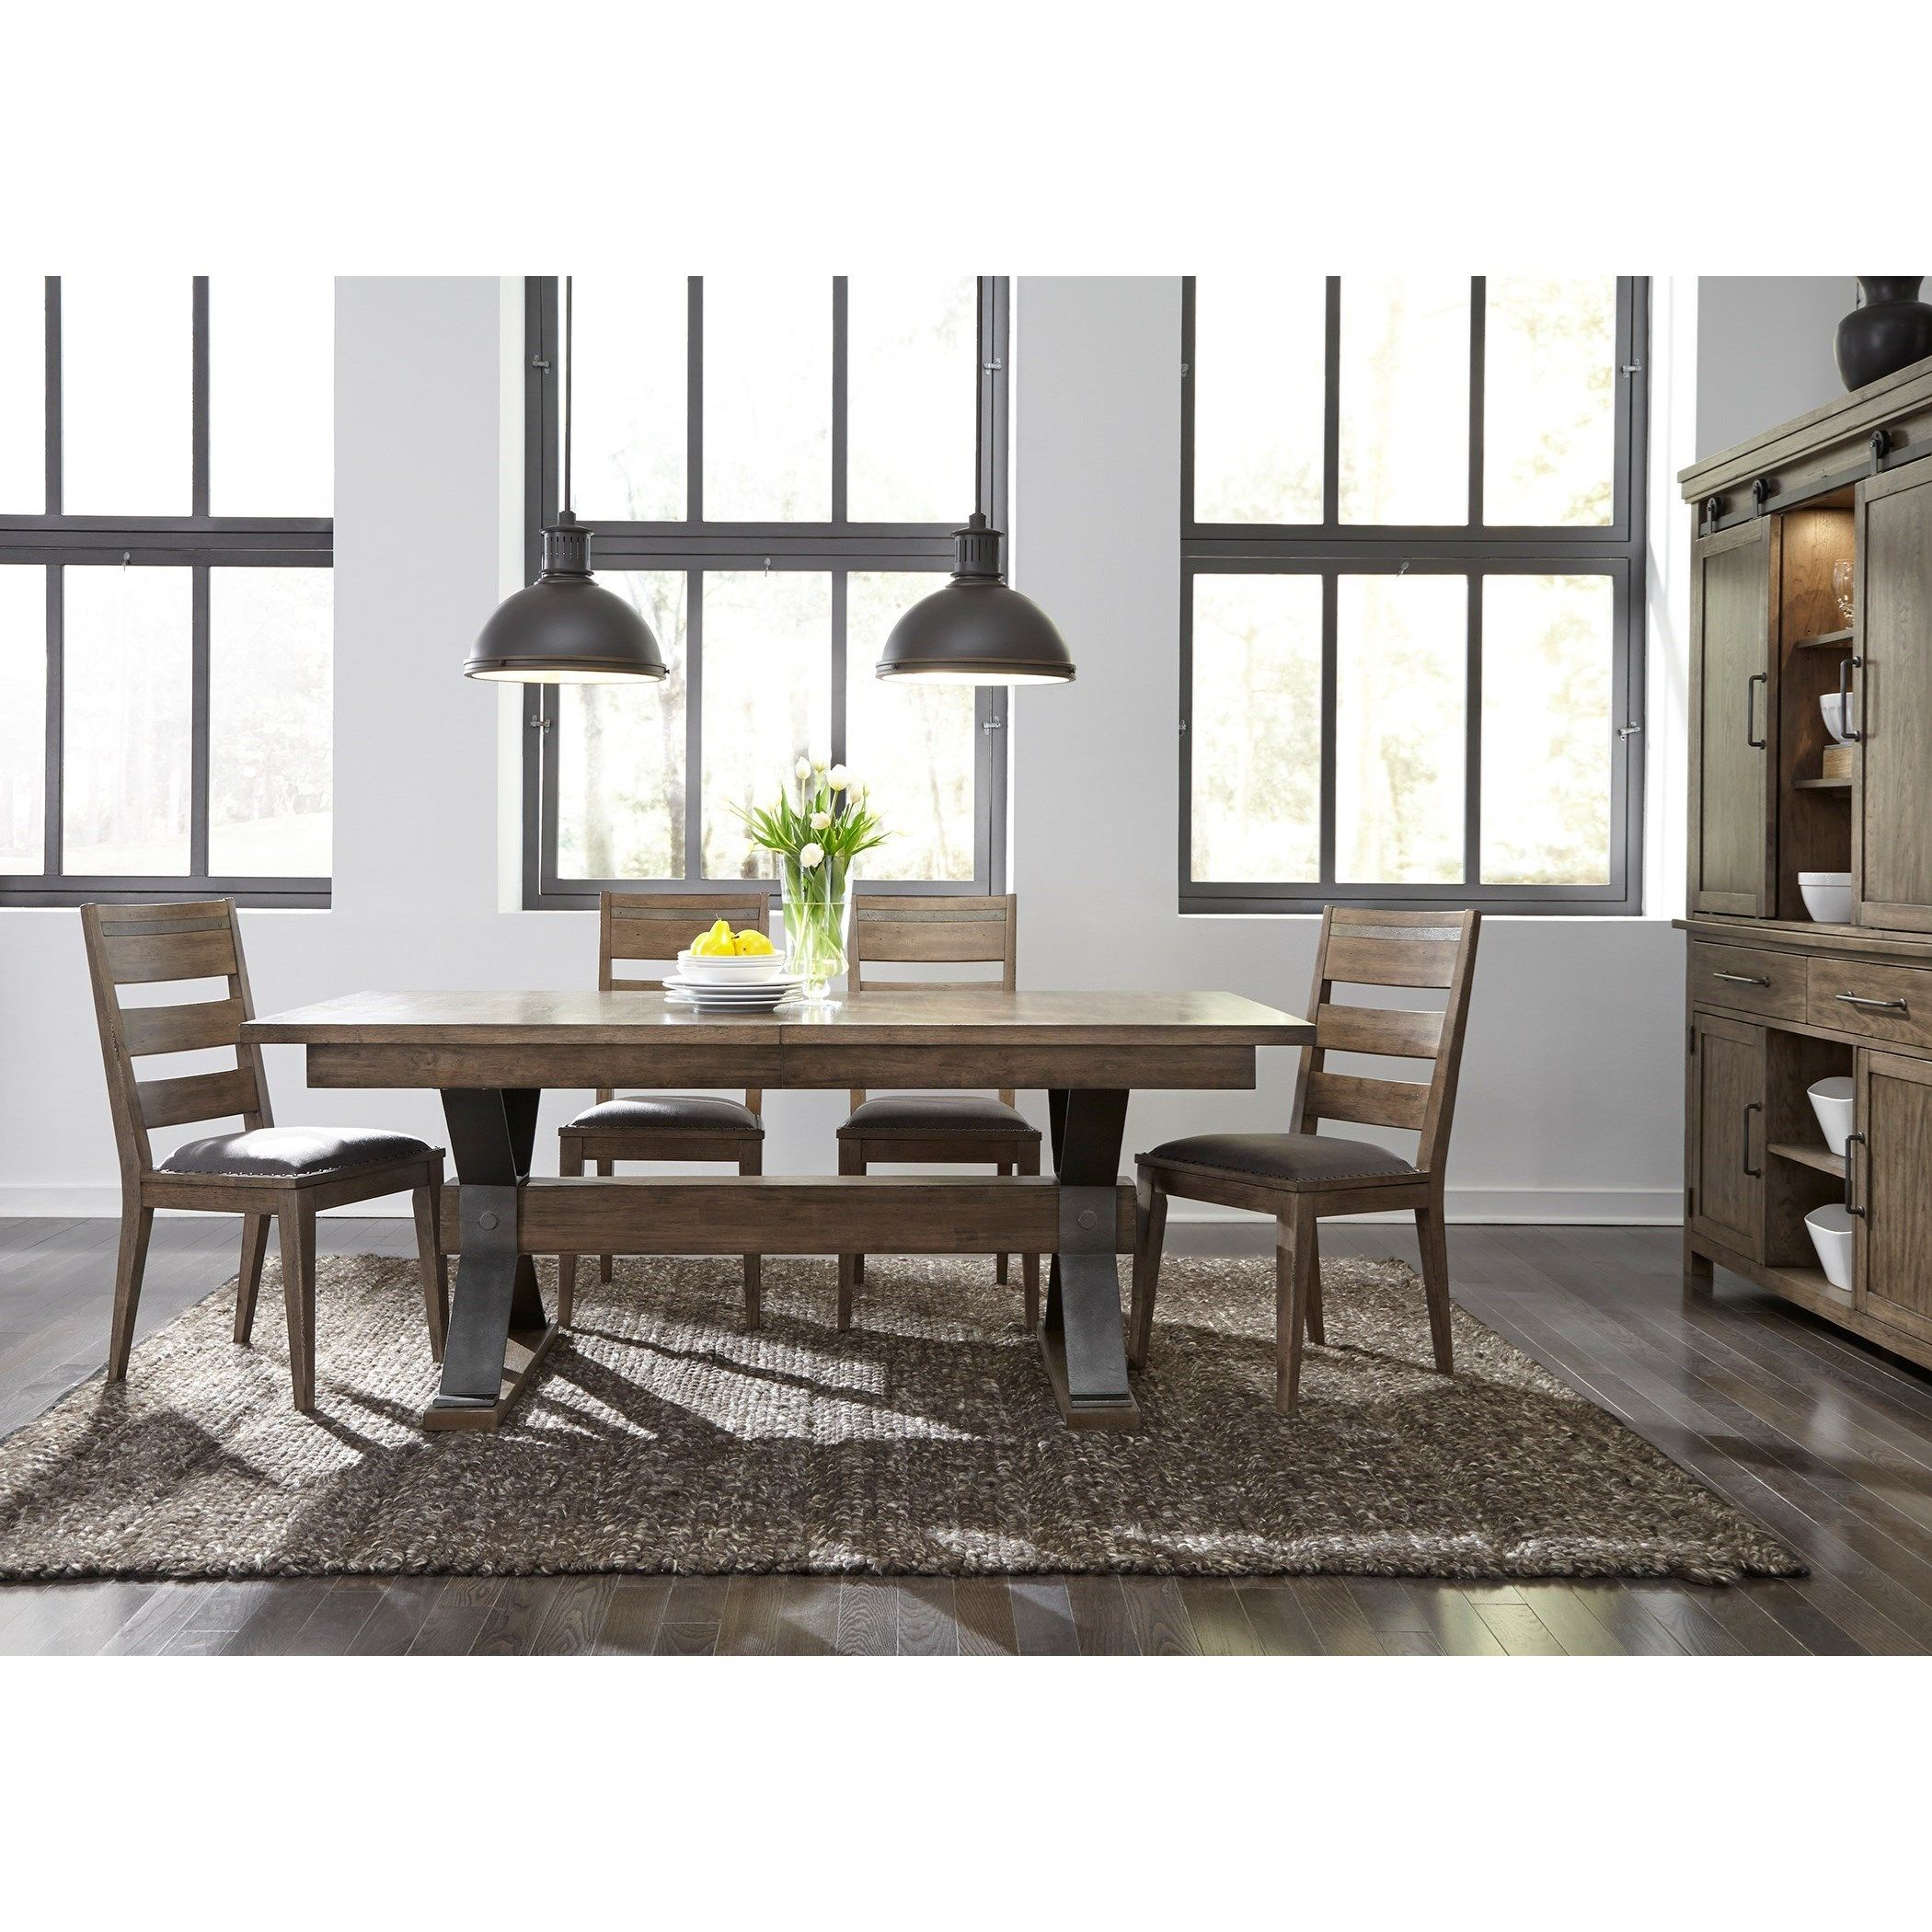 Sonoma Road Formal Dining Room Group